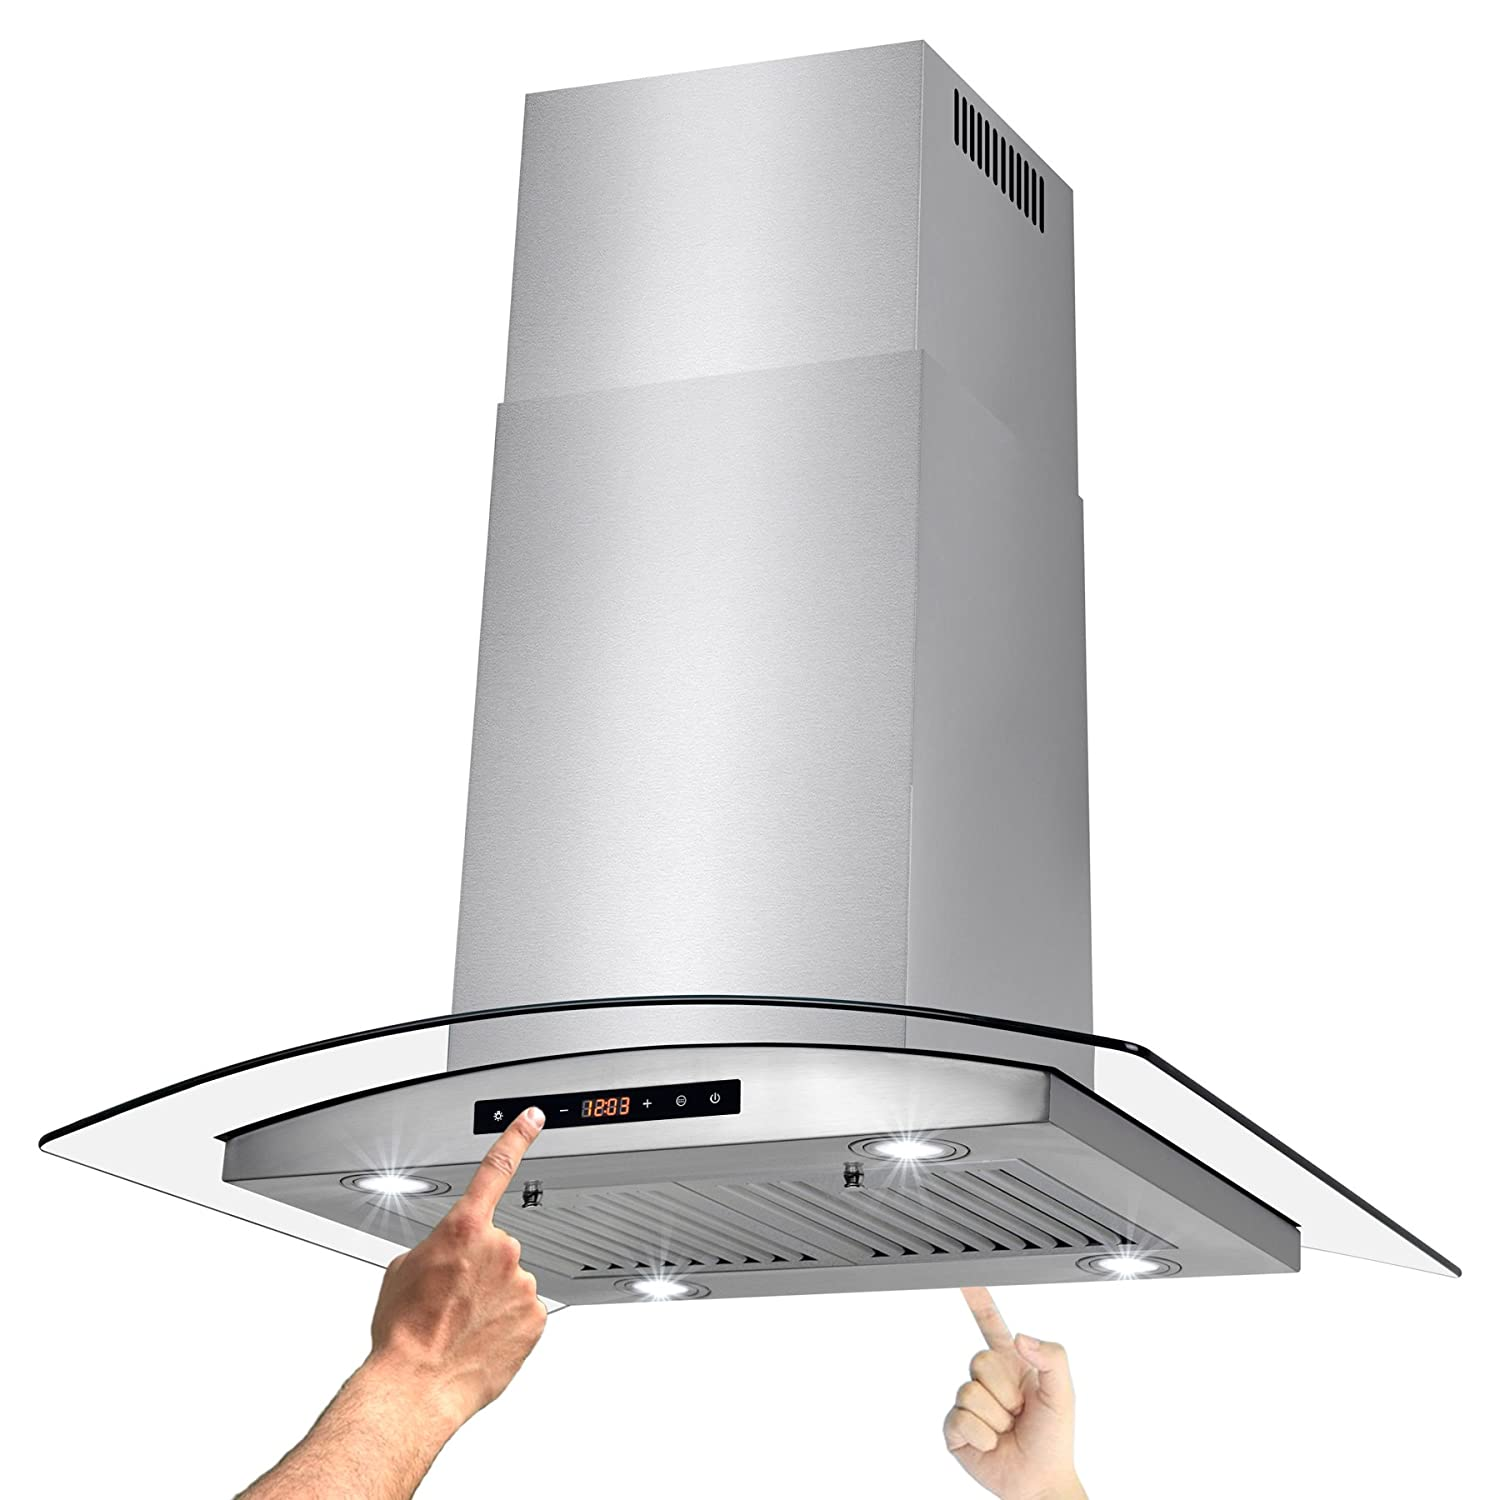 AKDY 30 Island Mount Stainless Steel Tempered Glass Kitchen Cooking Fan Range Hood Vent w/Dual Side Touch Control RH0305